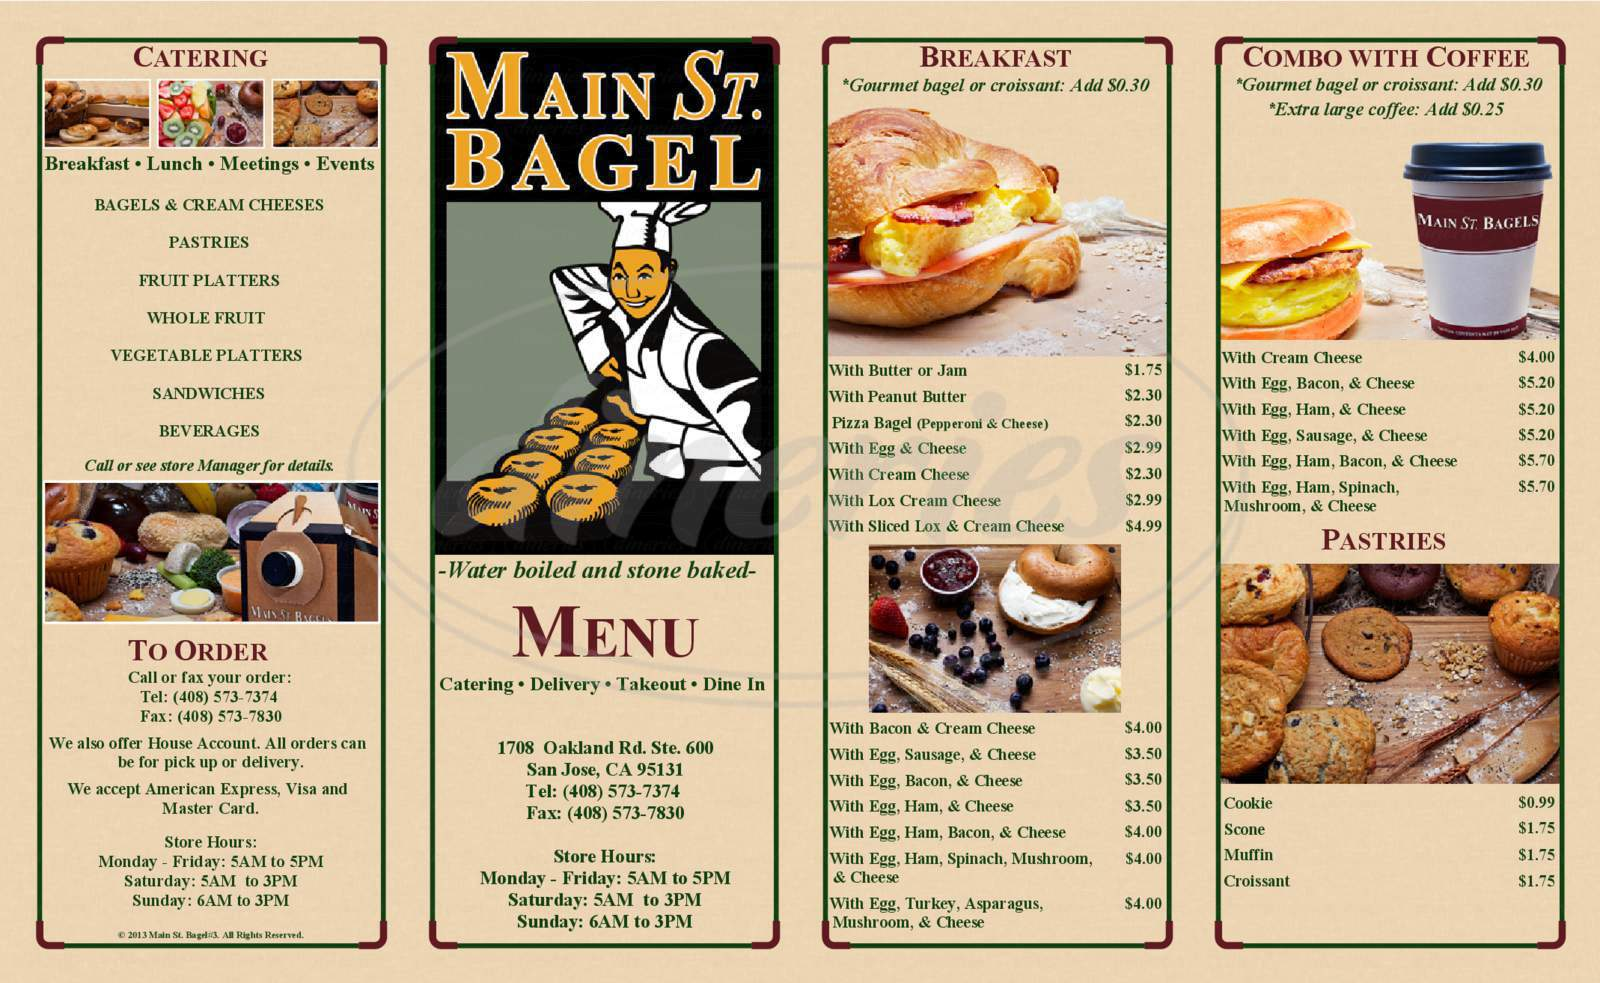 menu for Main St. Bagel